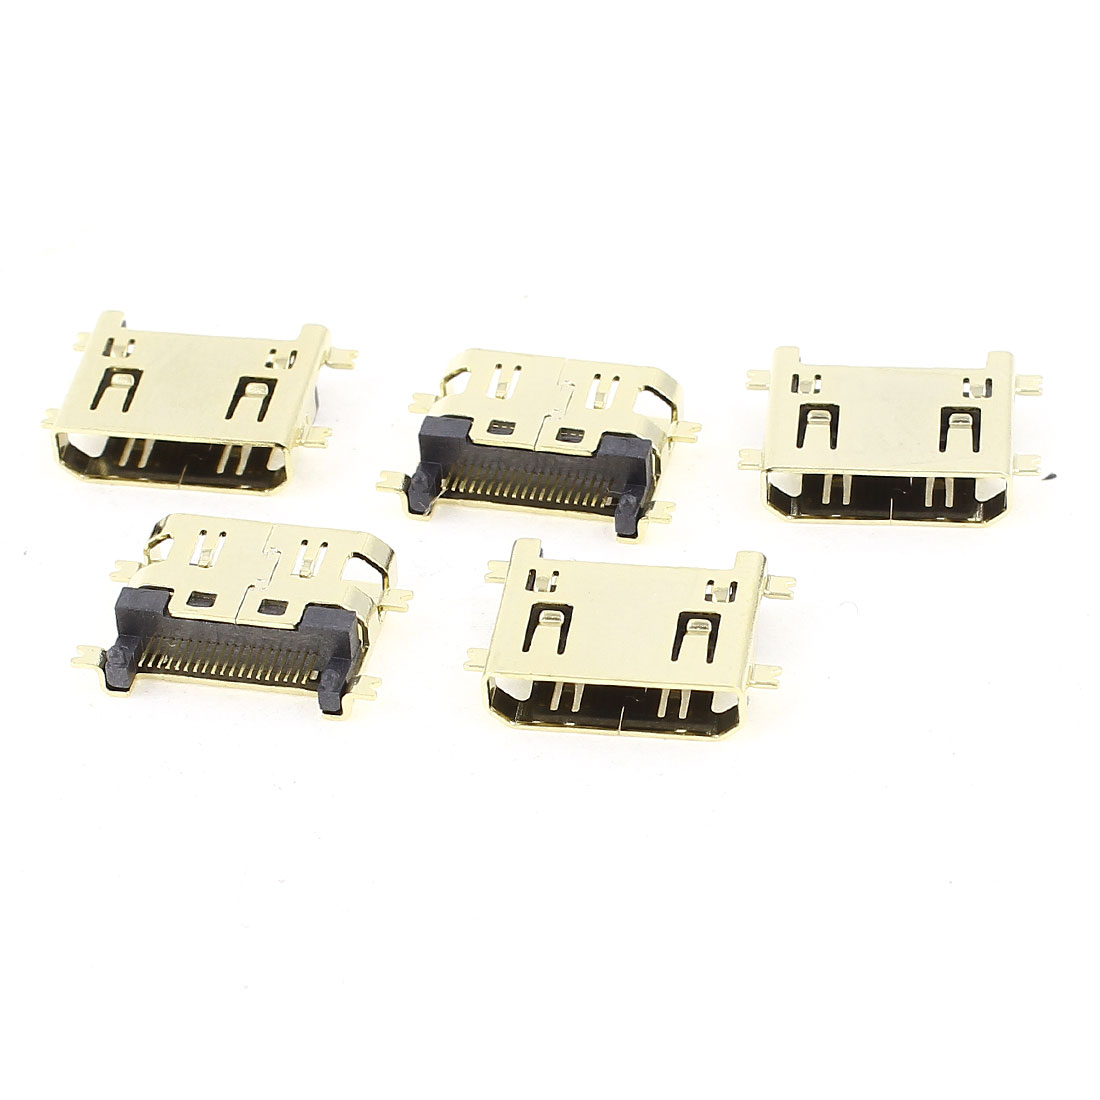 5pcs Gold Tone Gold-Plated SMT DIP Type Mini HDMI 19P Female Connector